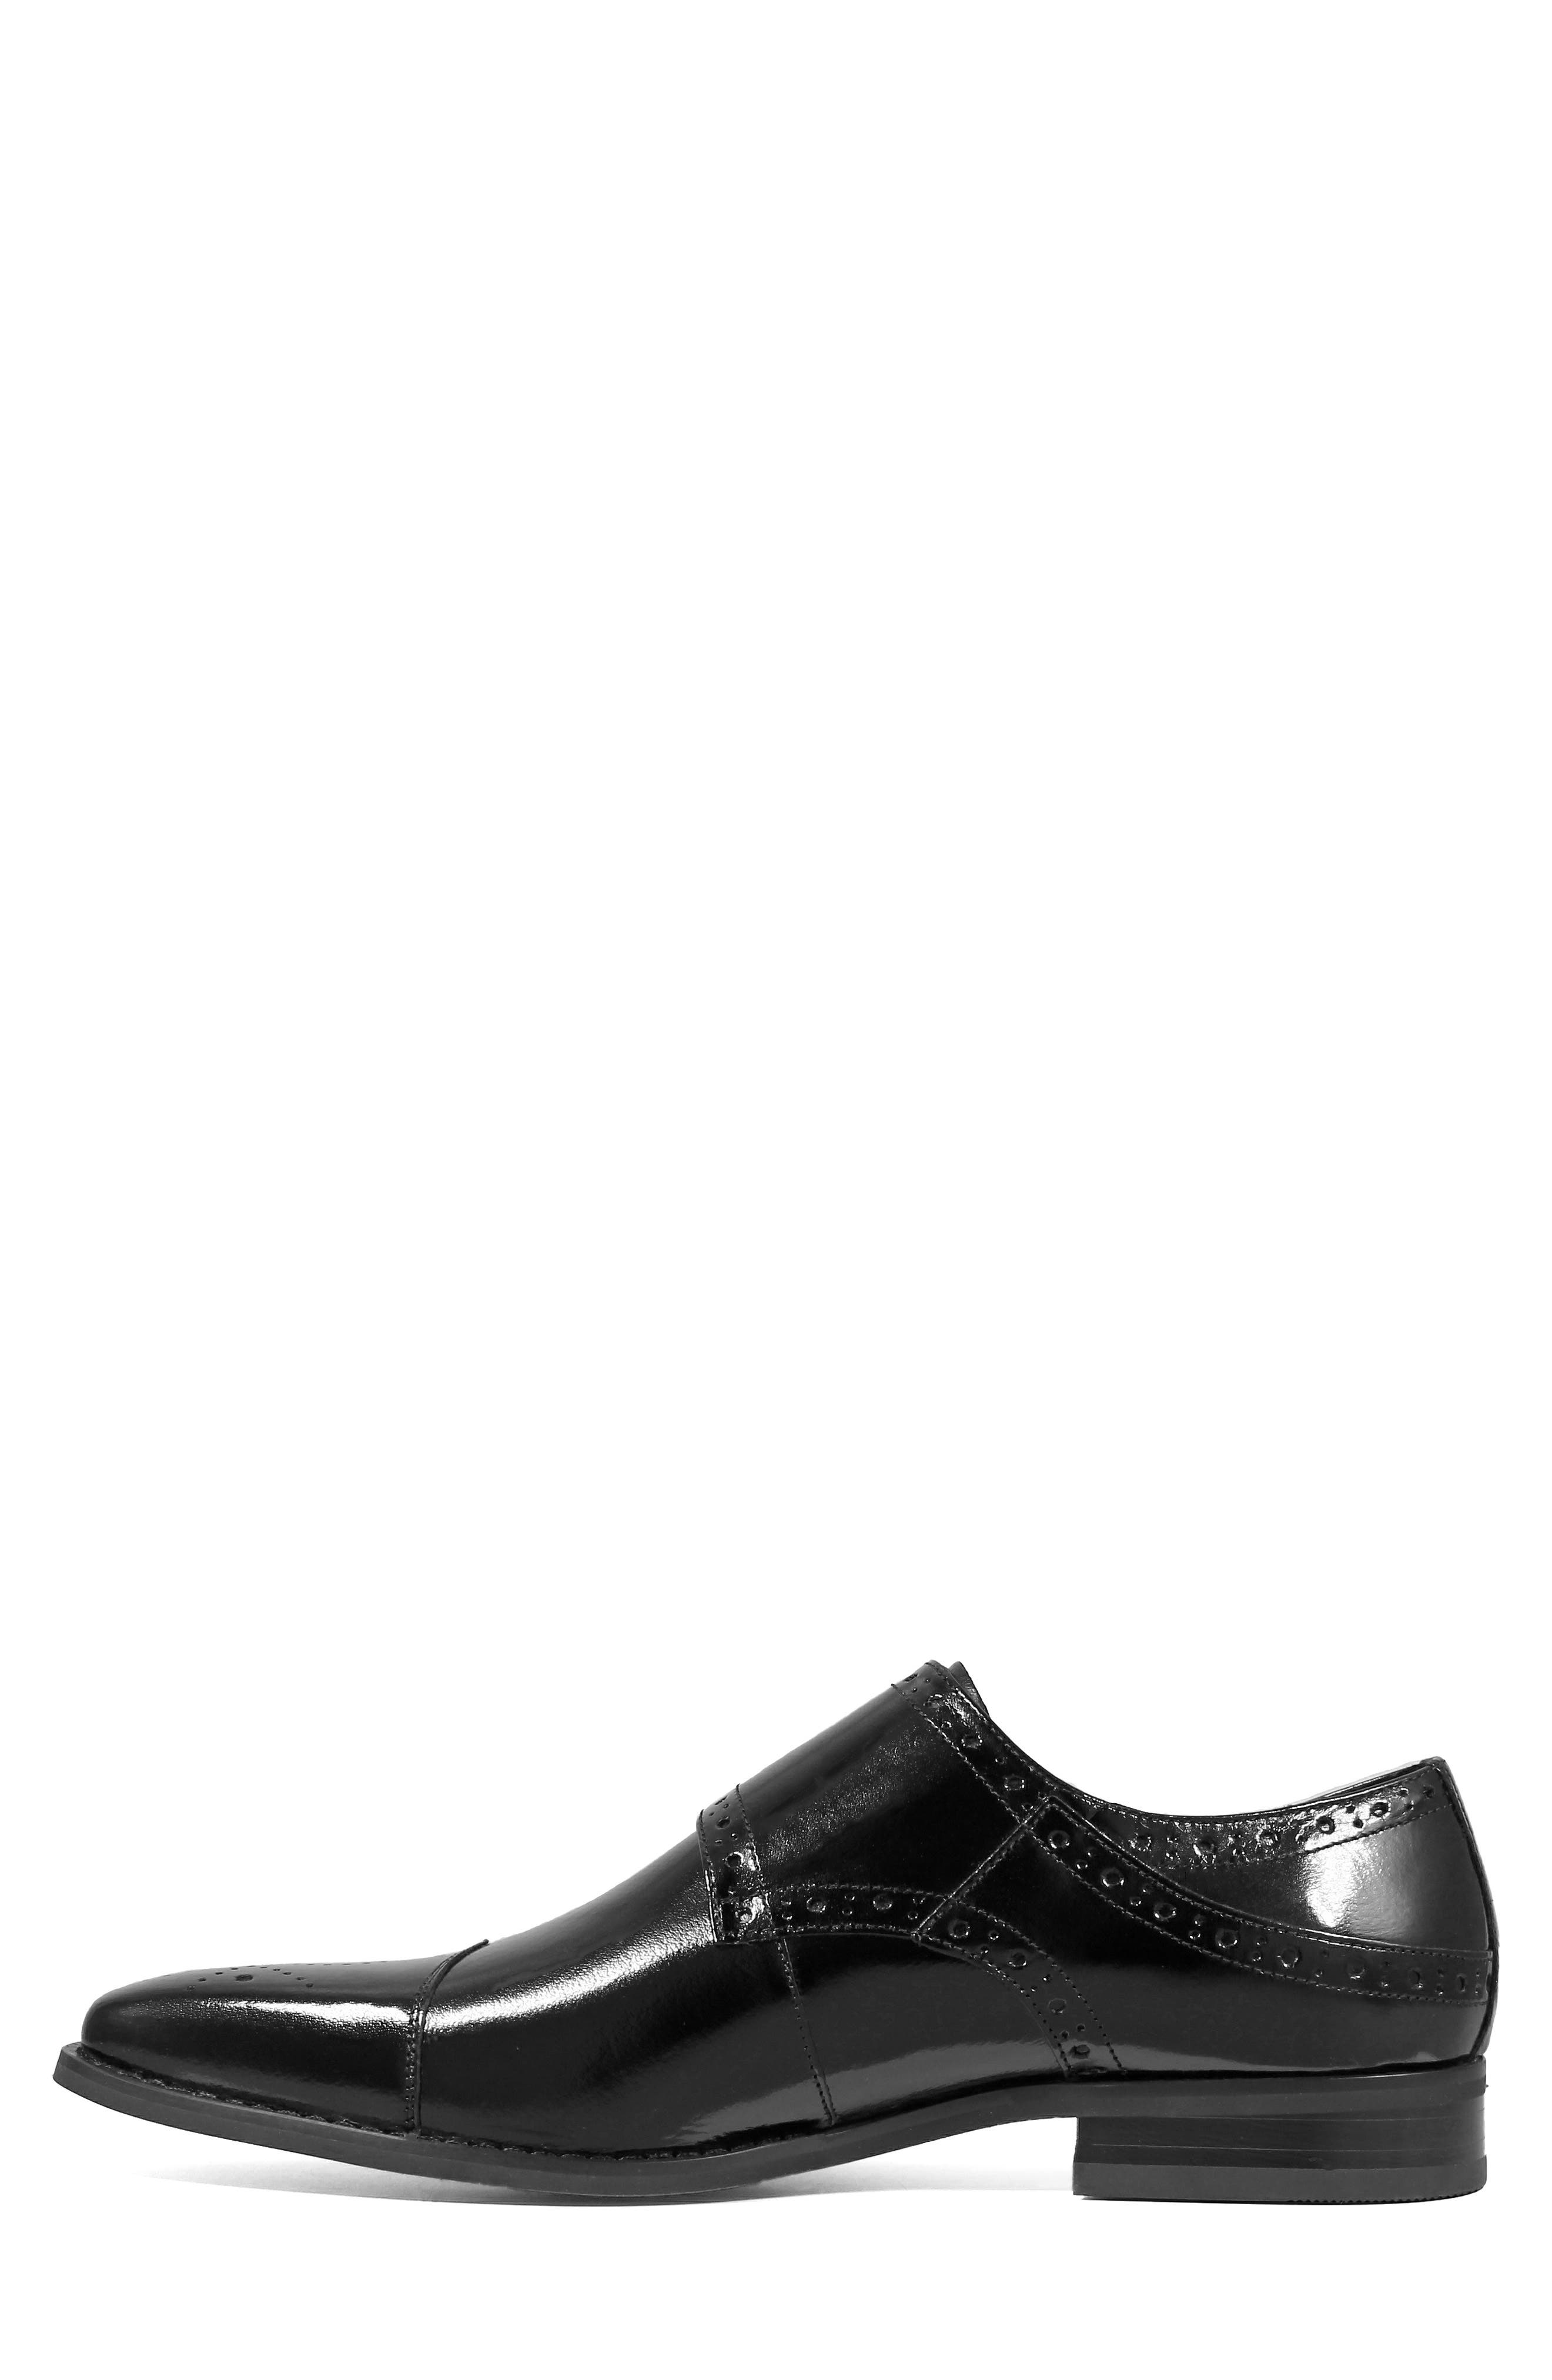 STACY ADAMS, Tayton Cap Toe Double Strap Monk Shoe, Alternate thumbnail 7, color, BLACK LEATHER